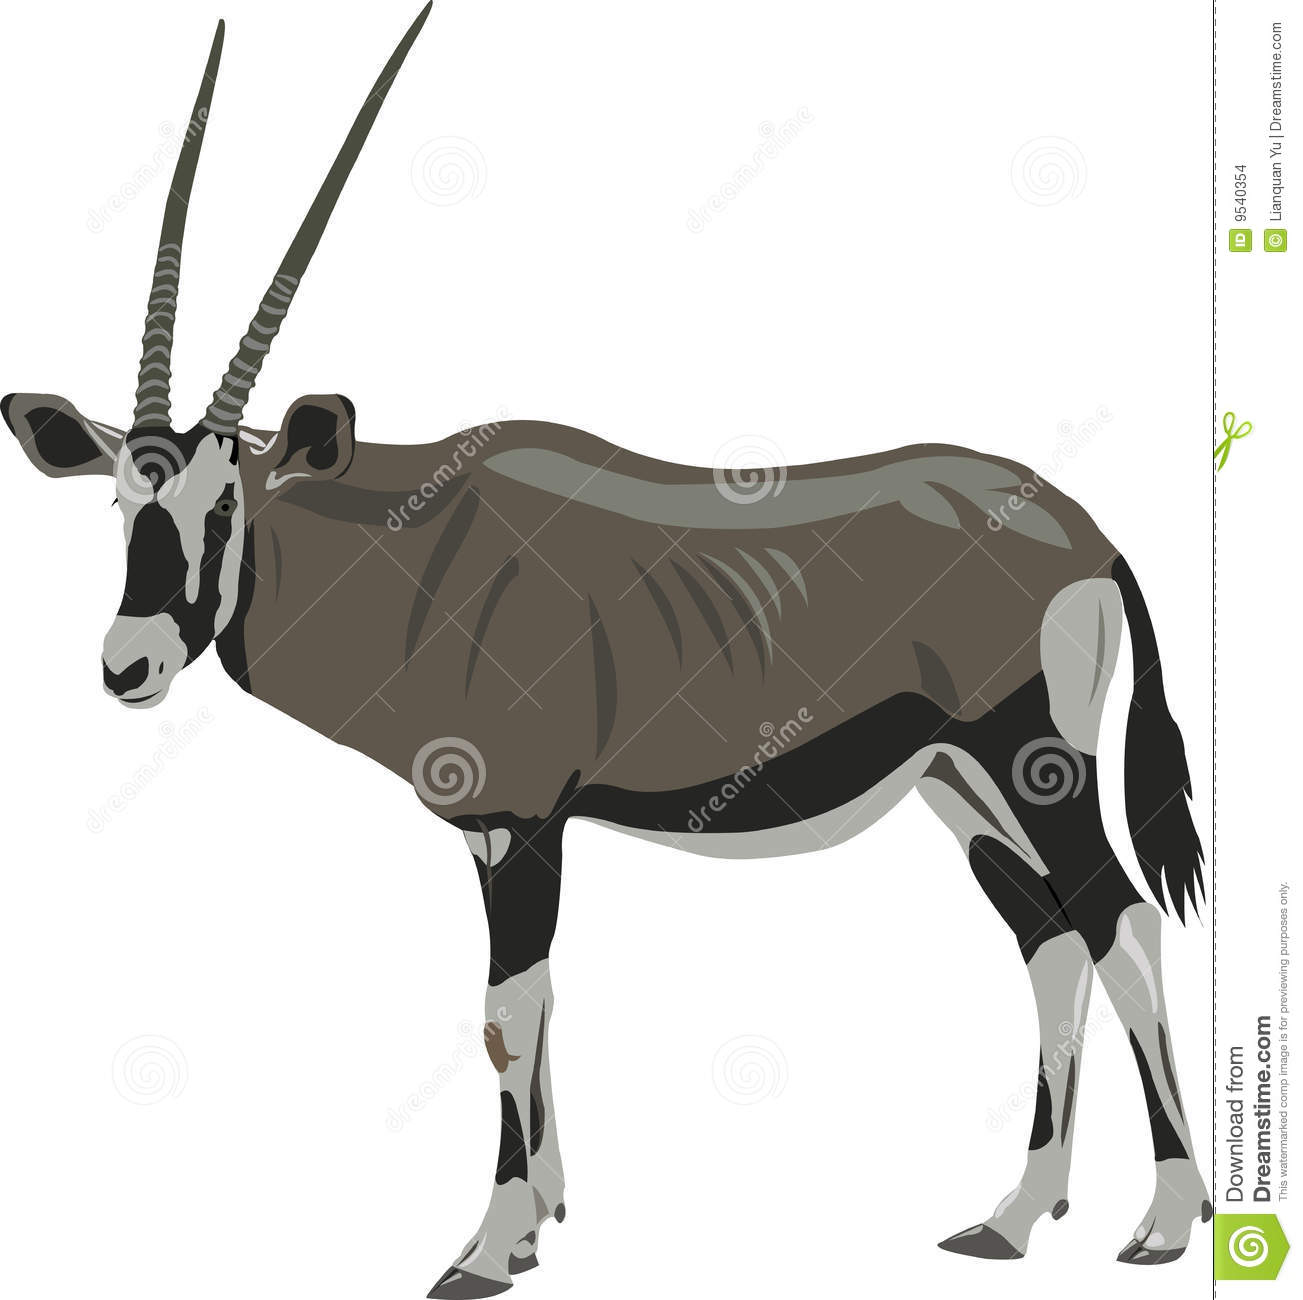 Oryx clipart #11, Download drawings